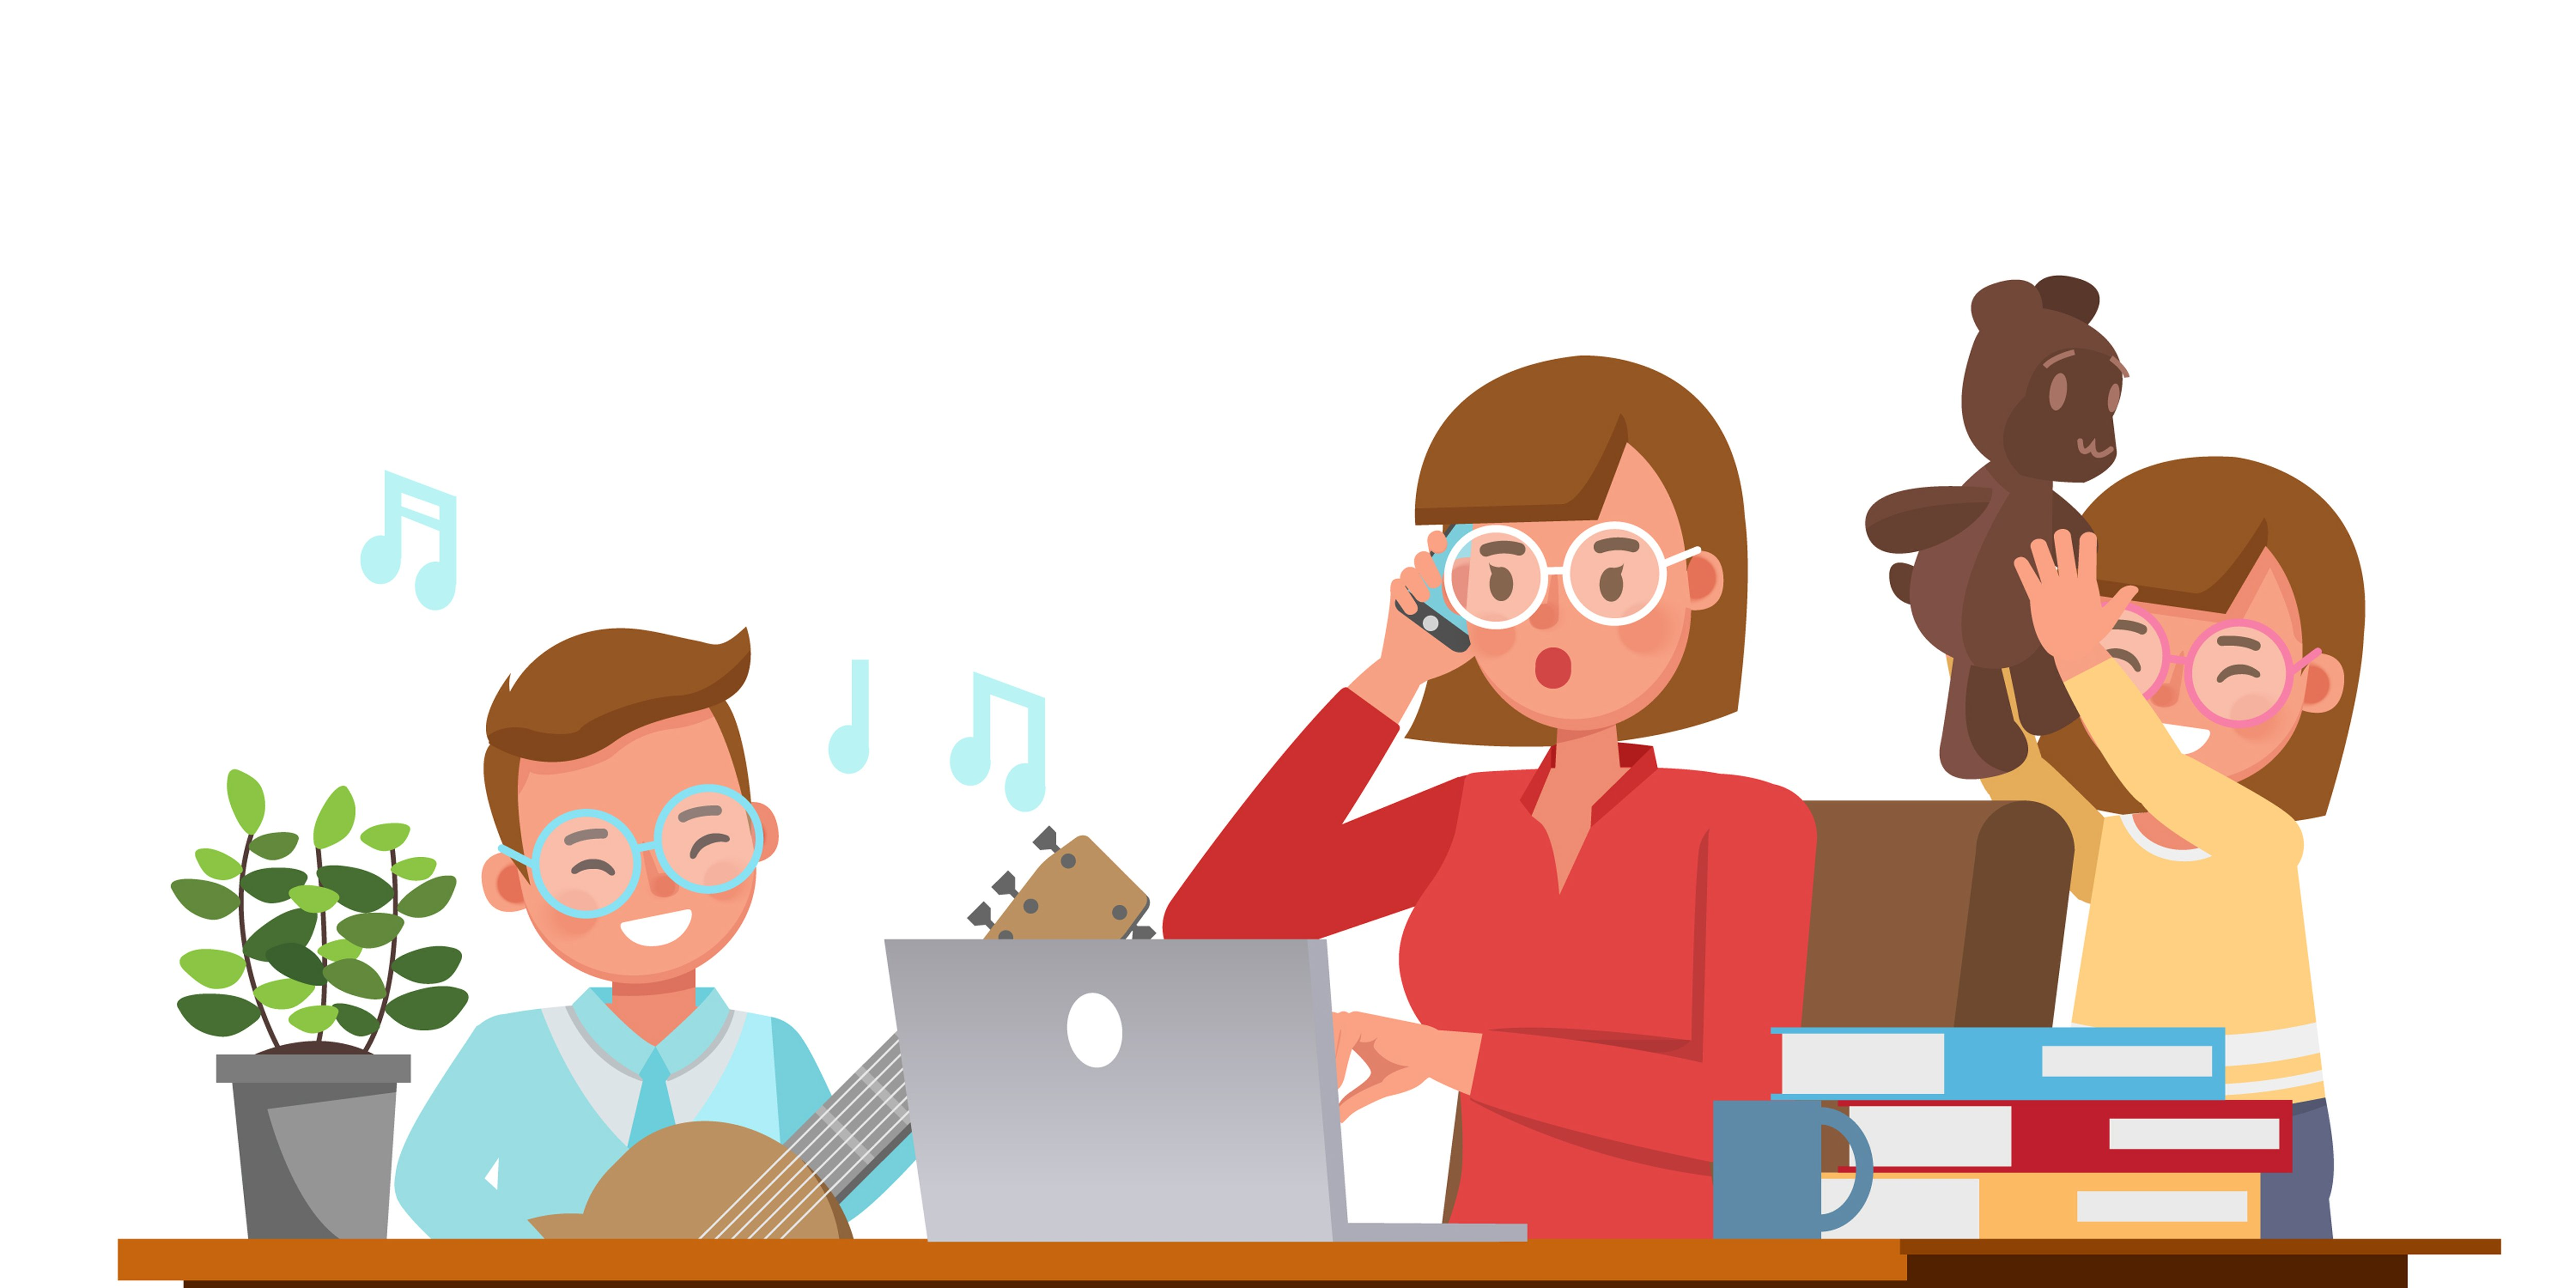 Mother working from home with kids character vector design. Social distancing and self-isolation concept.